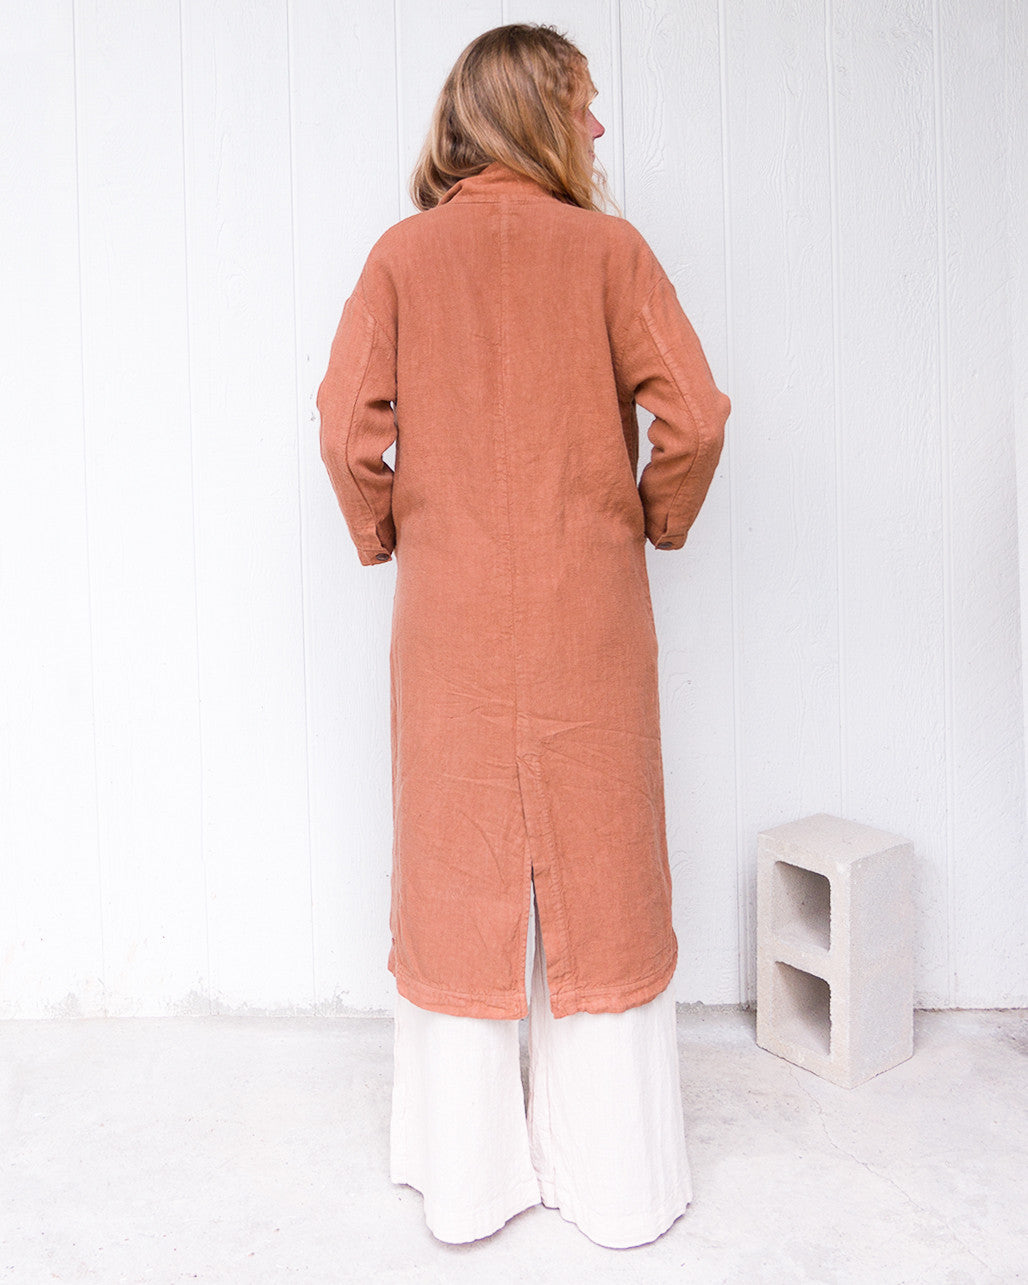 Baronne Linen Duster, Esby - Gingerly Witty